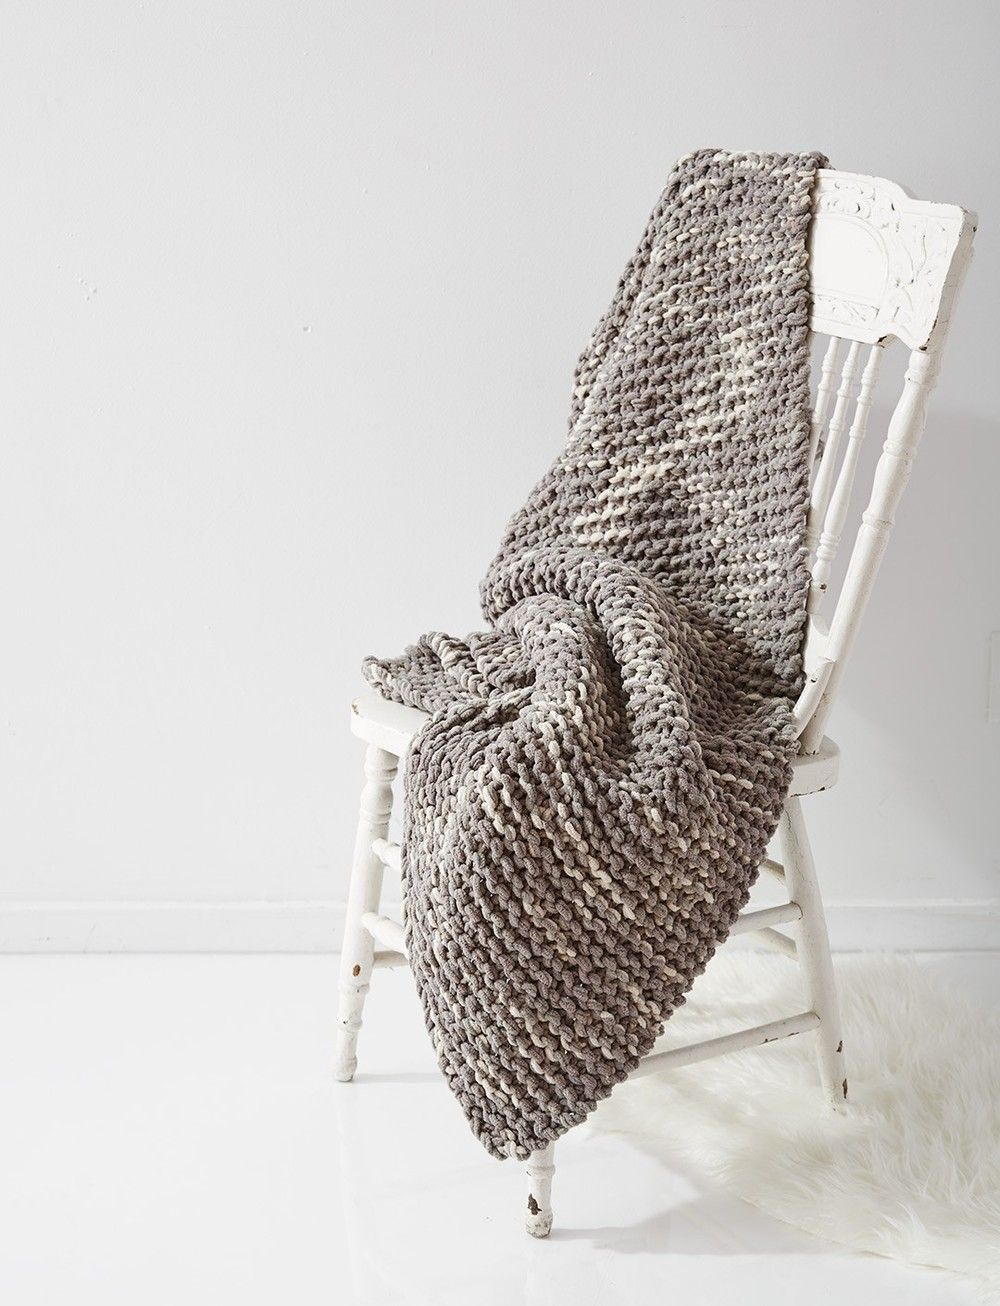 Stormy Weather Blanket   Knitting blanket patterns, Blanket and Weather